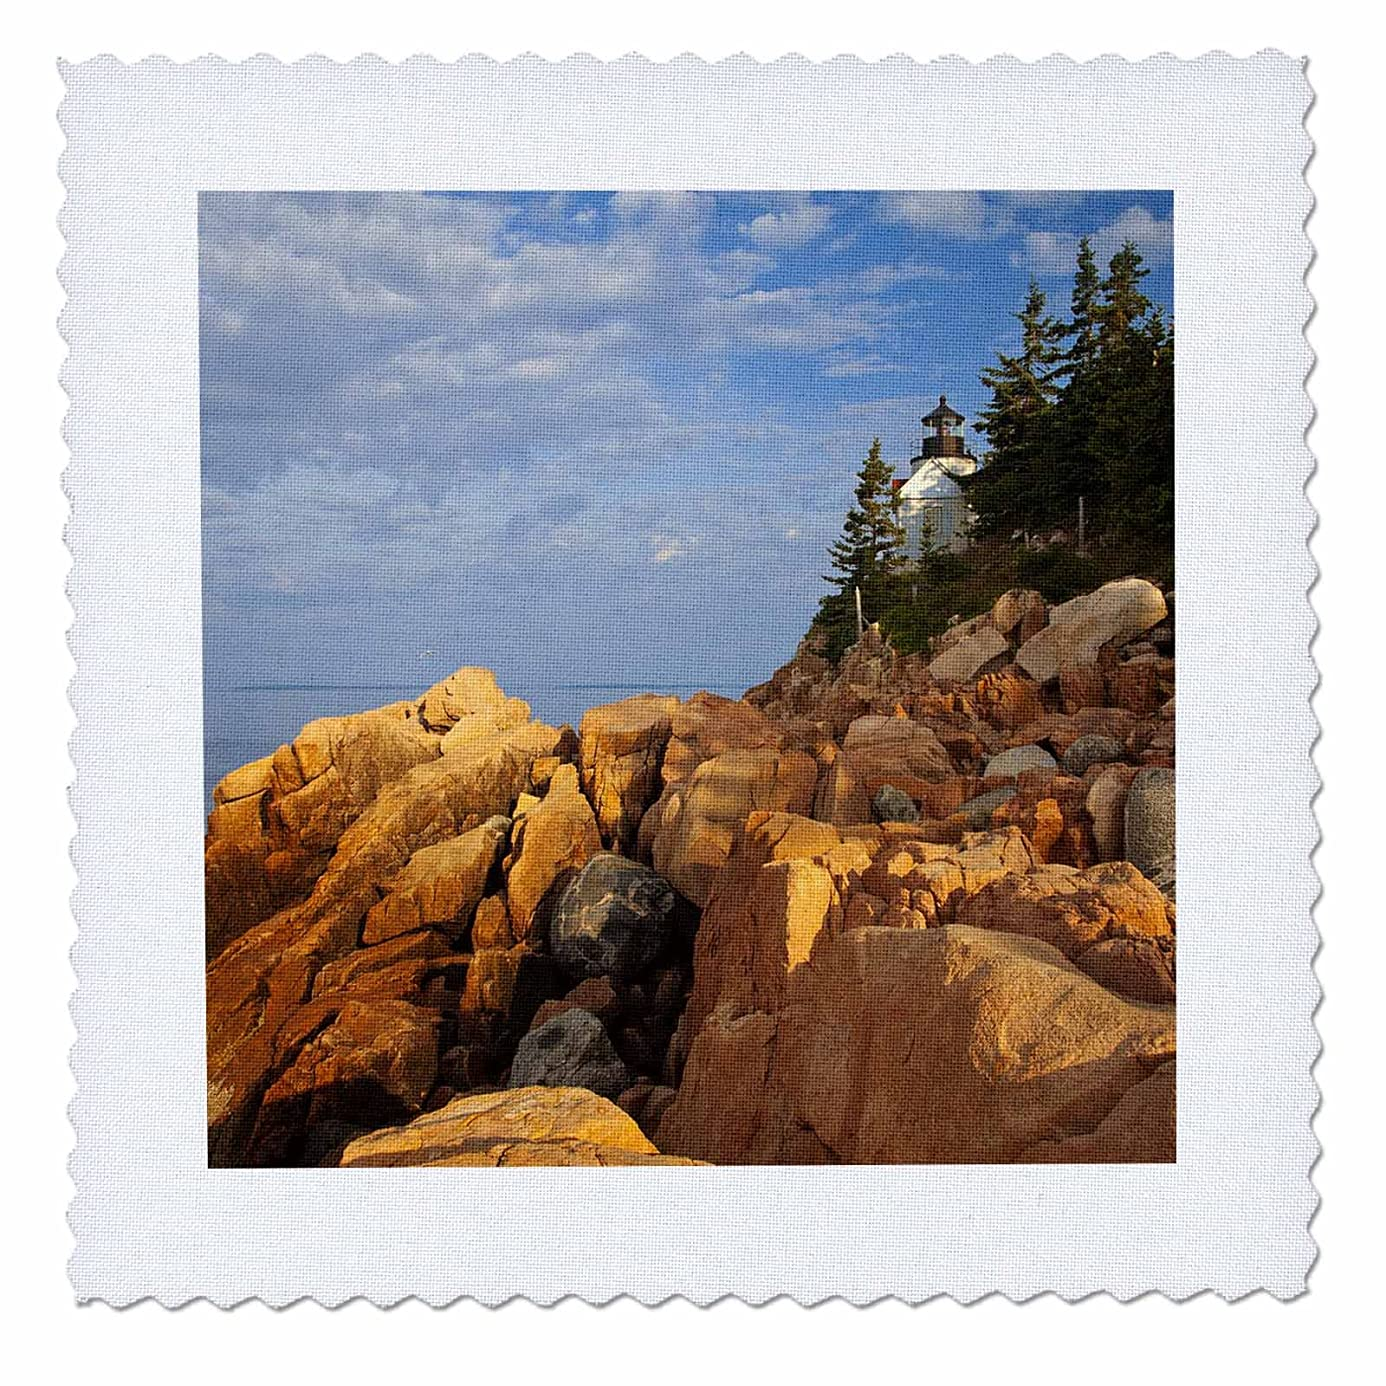 3dRose qs_90620_6 Bass Harbor Lighthouse, Acadia National Park, Maine - US20 CHA0018 - Chuck Haney - Quilt Square, 16 by 16-Inch tzu0096179